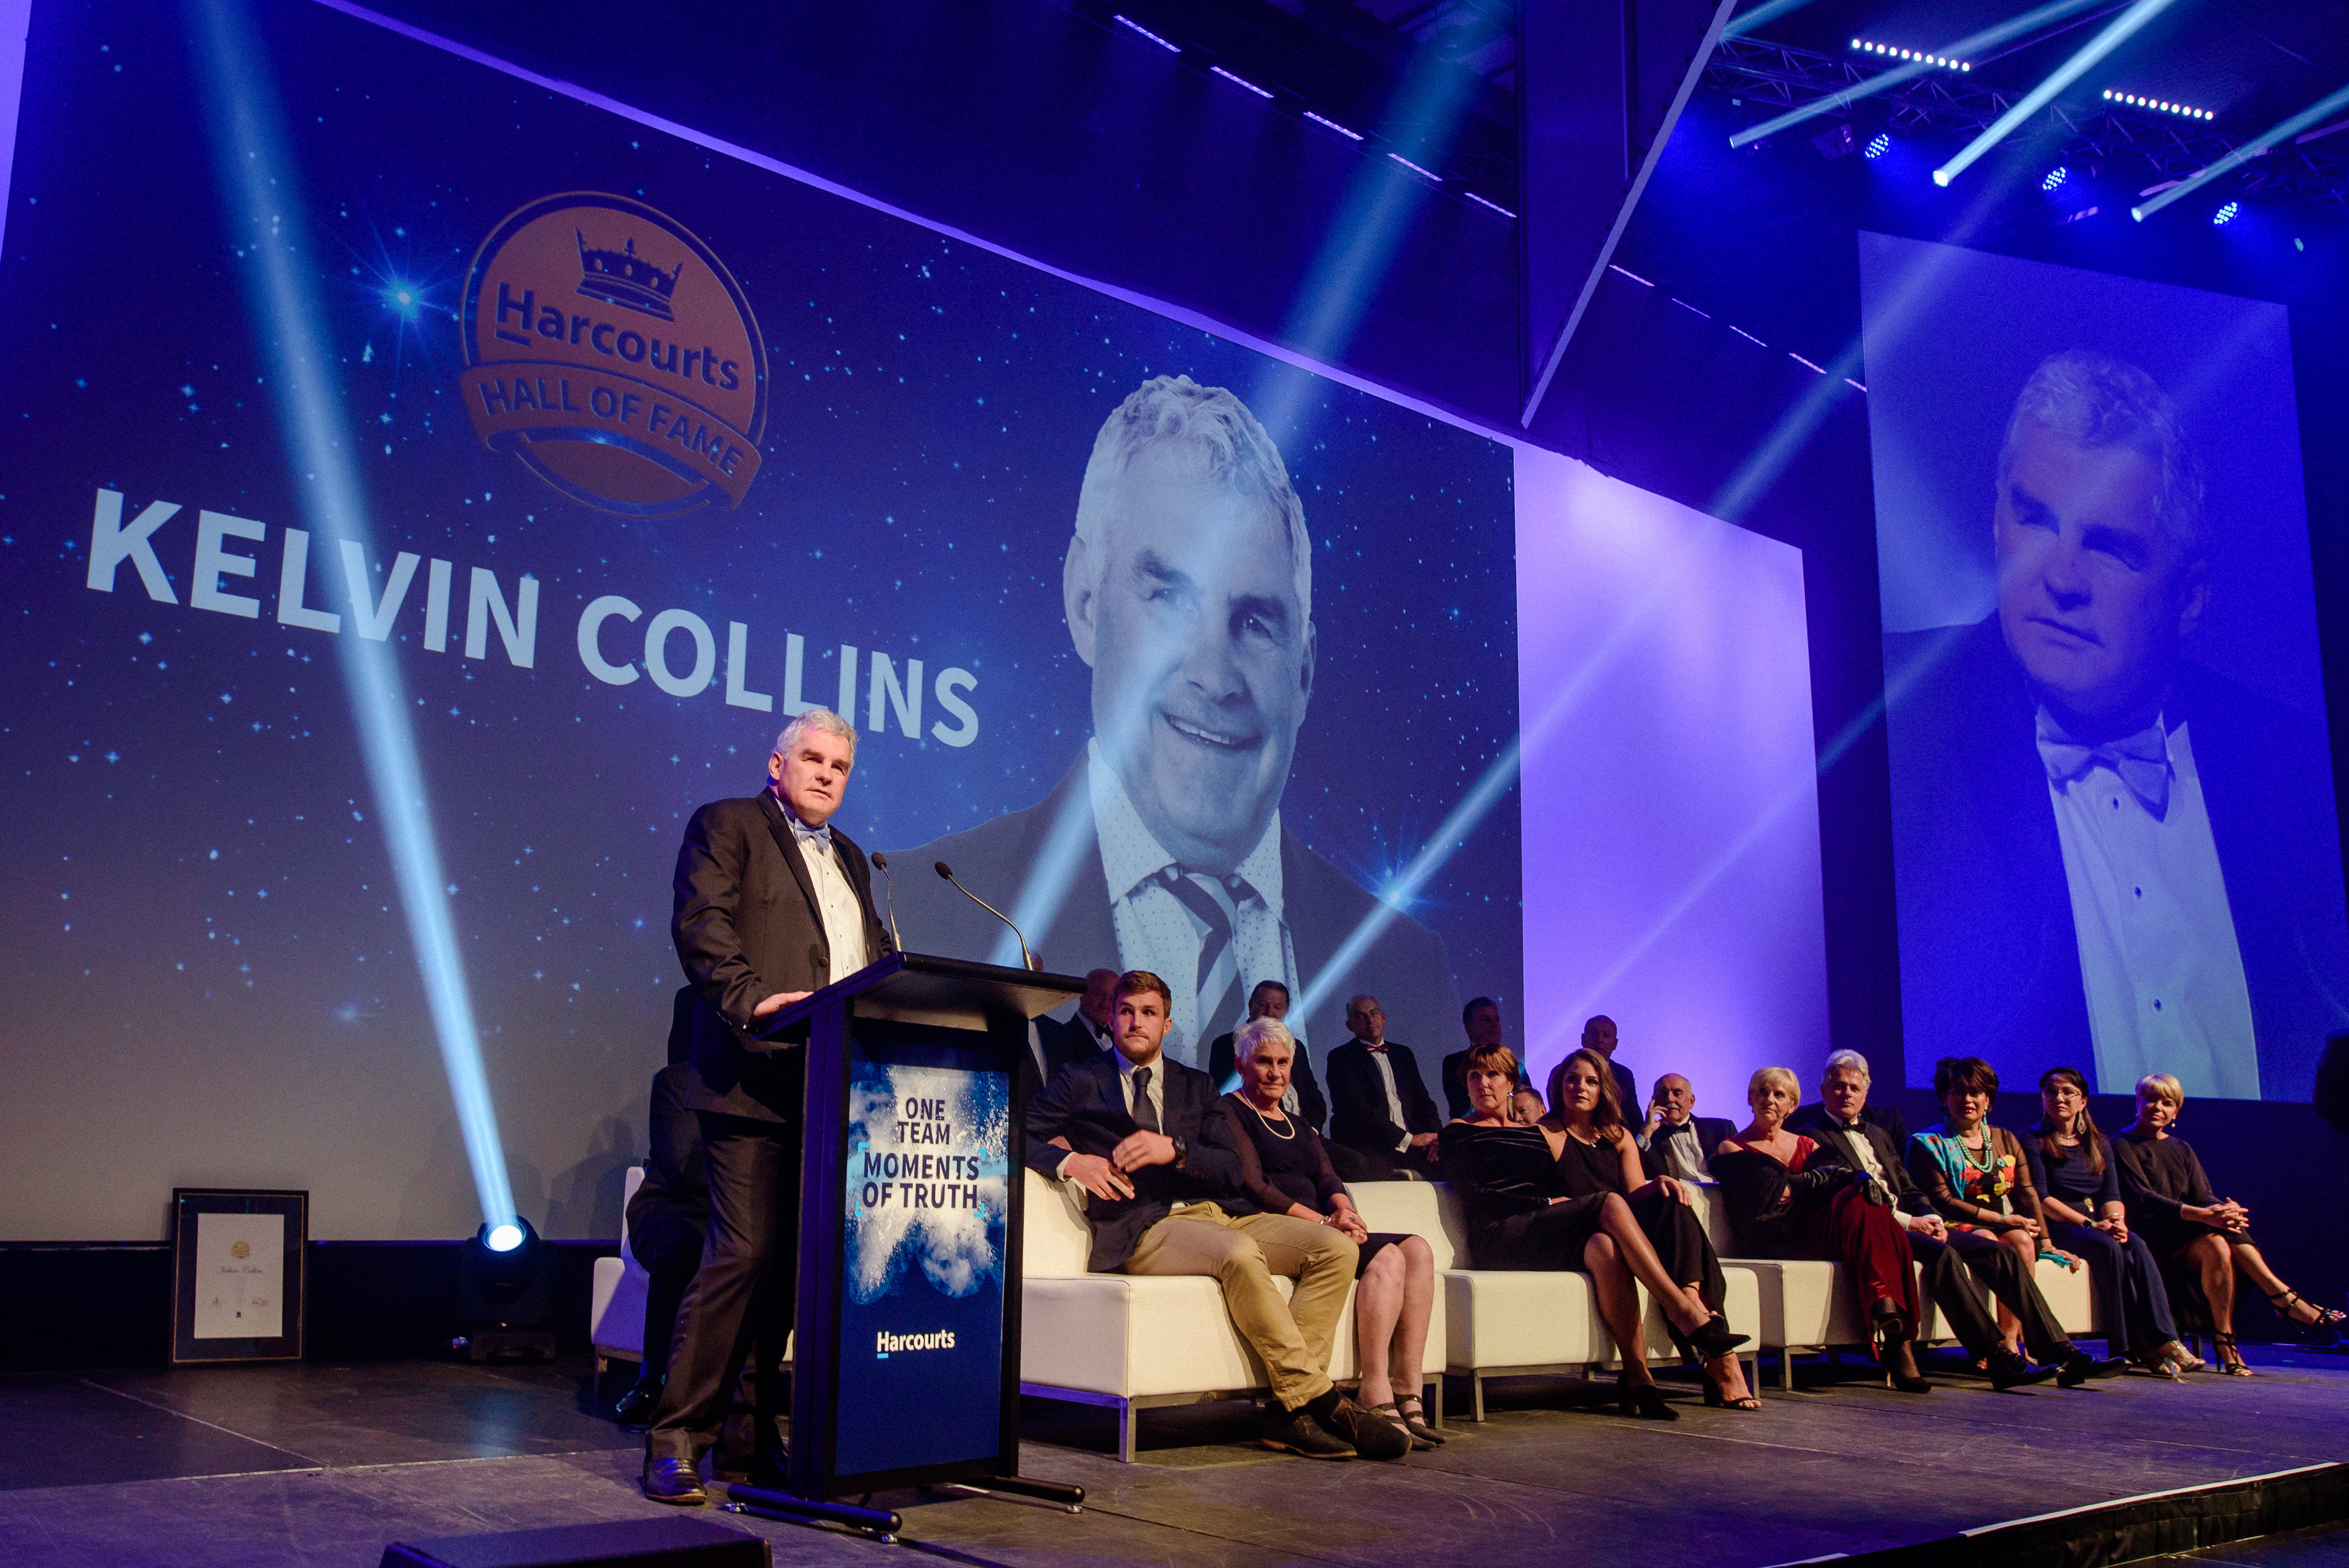 Welcome to the Hall of Fame, Kelvin Collins!